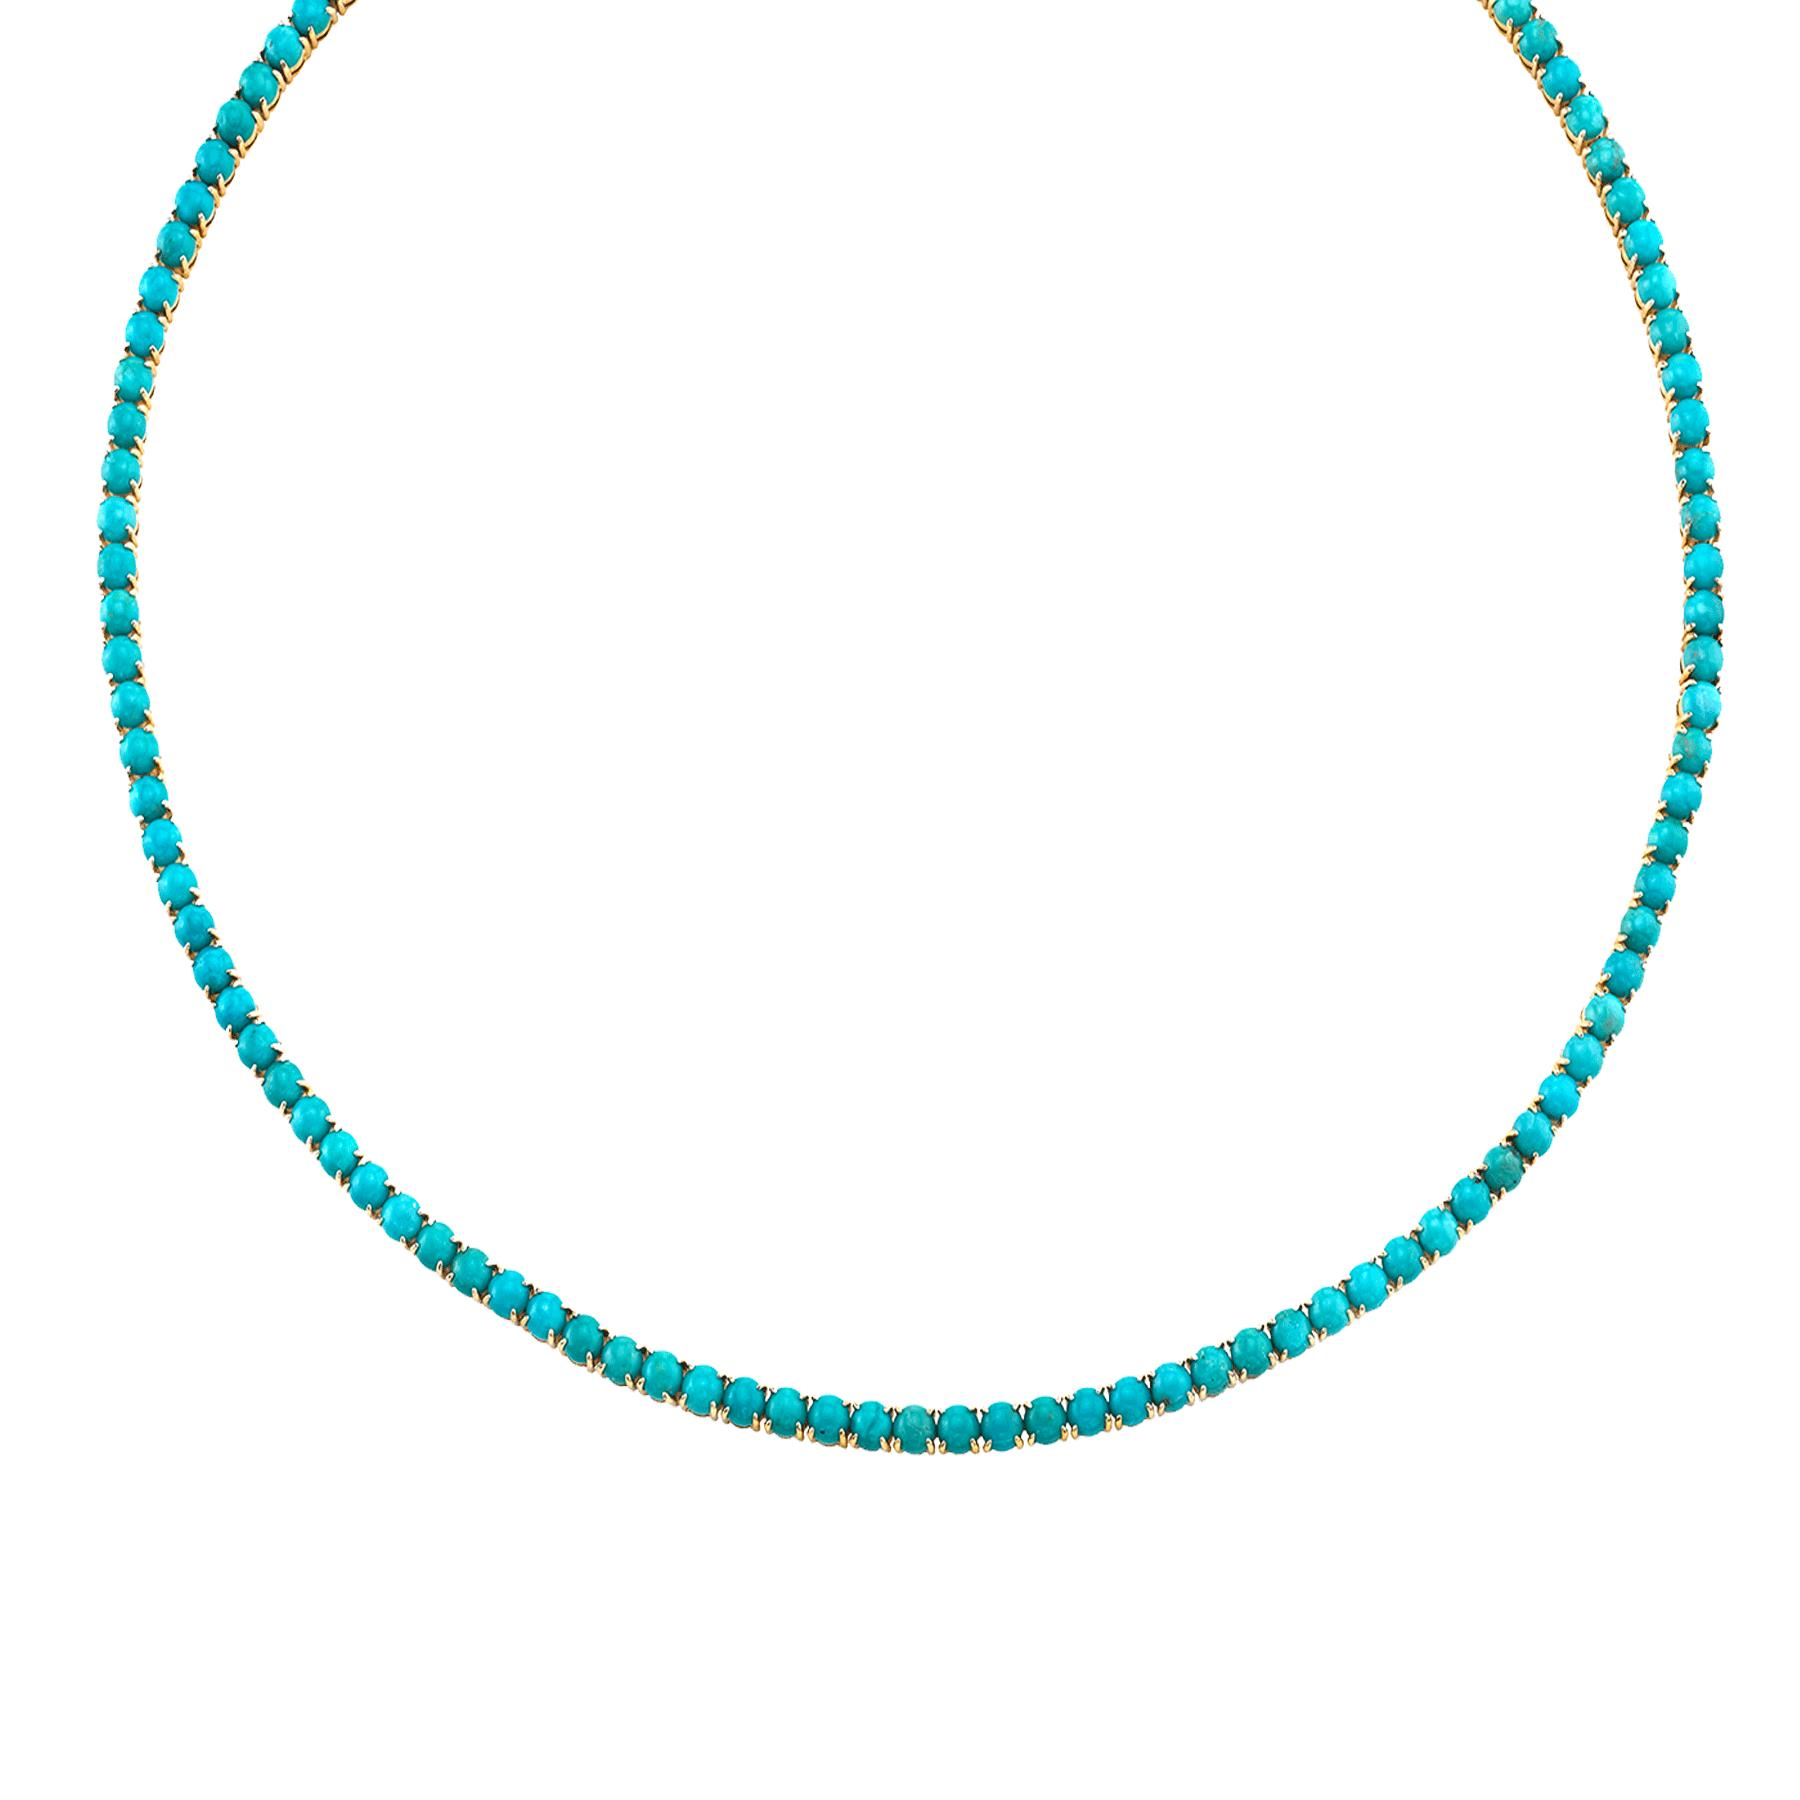 PERFECT TURQUOISE TENNIS NECKLACE